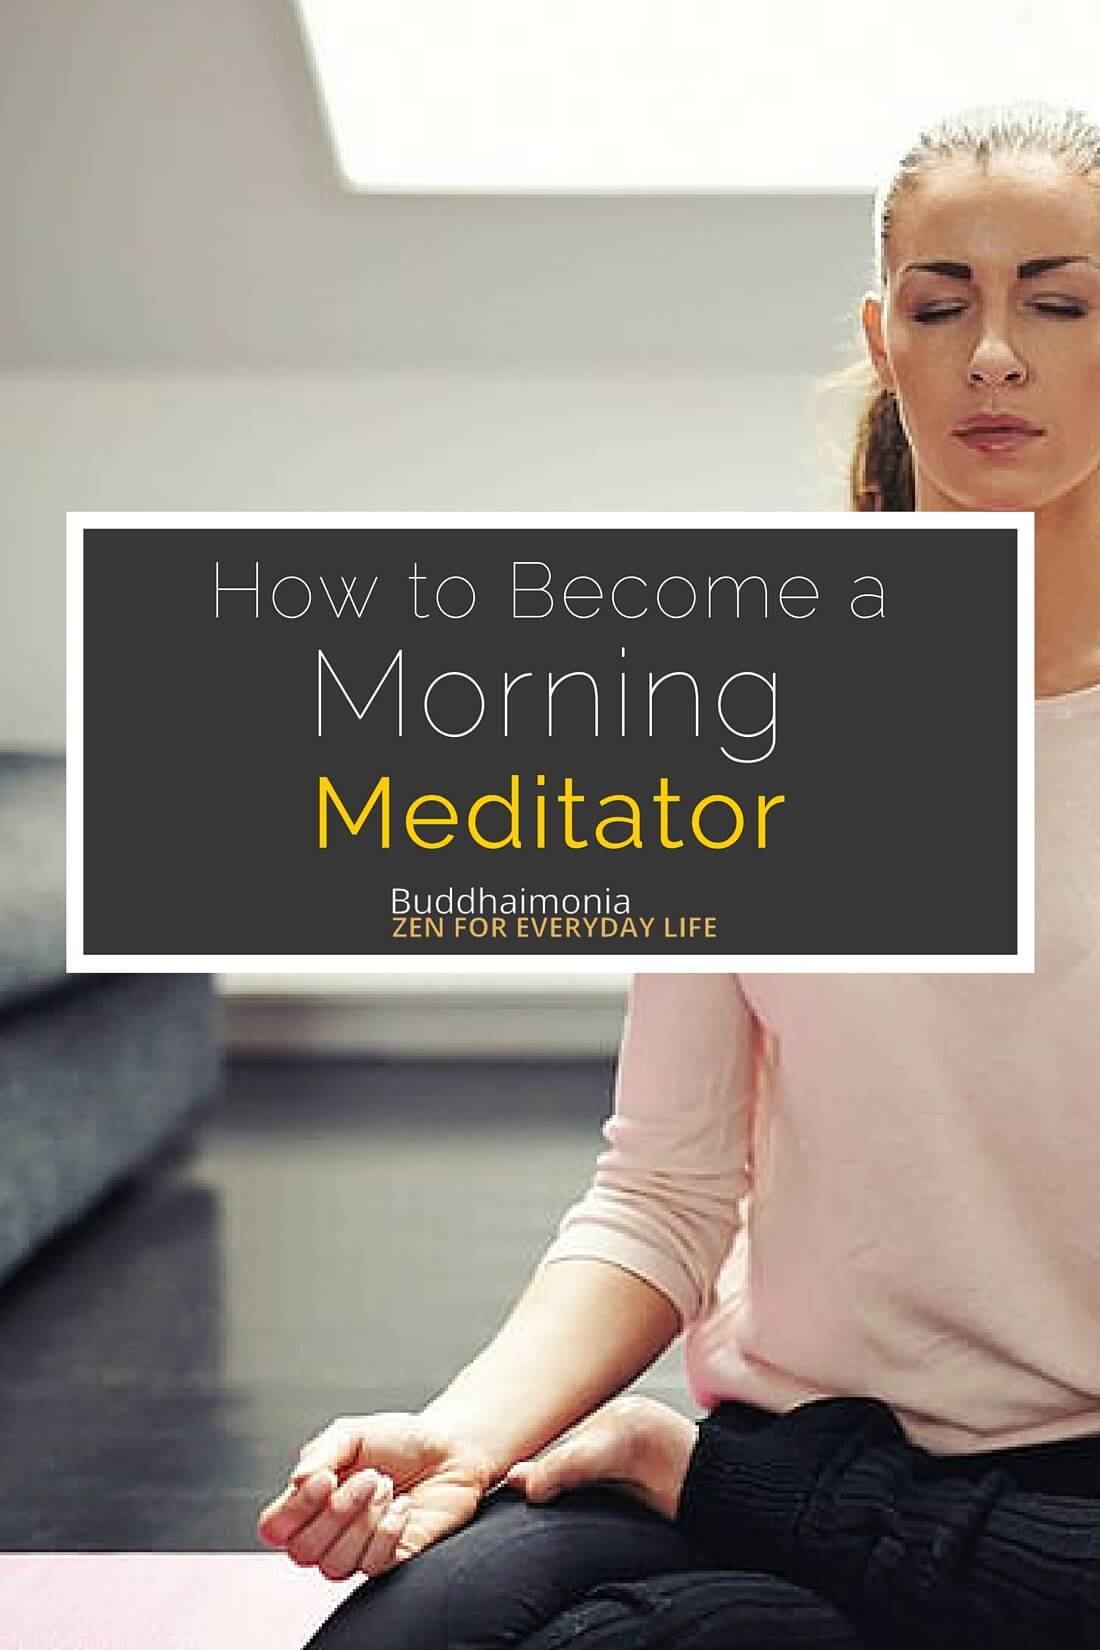 How to Become a Morning Meditator (1)